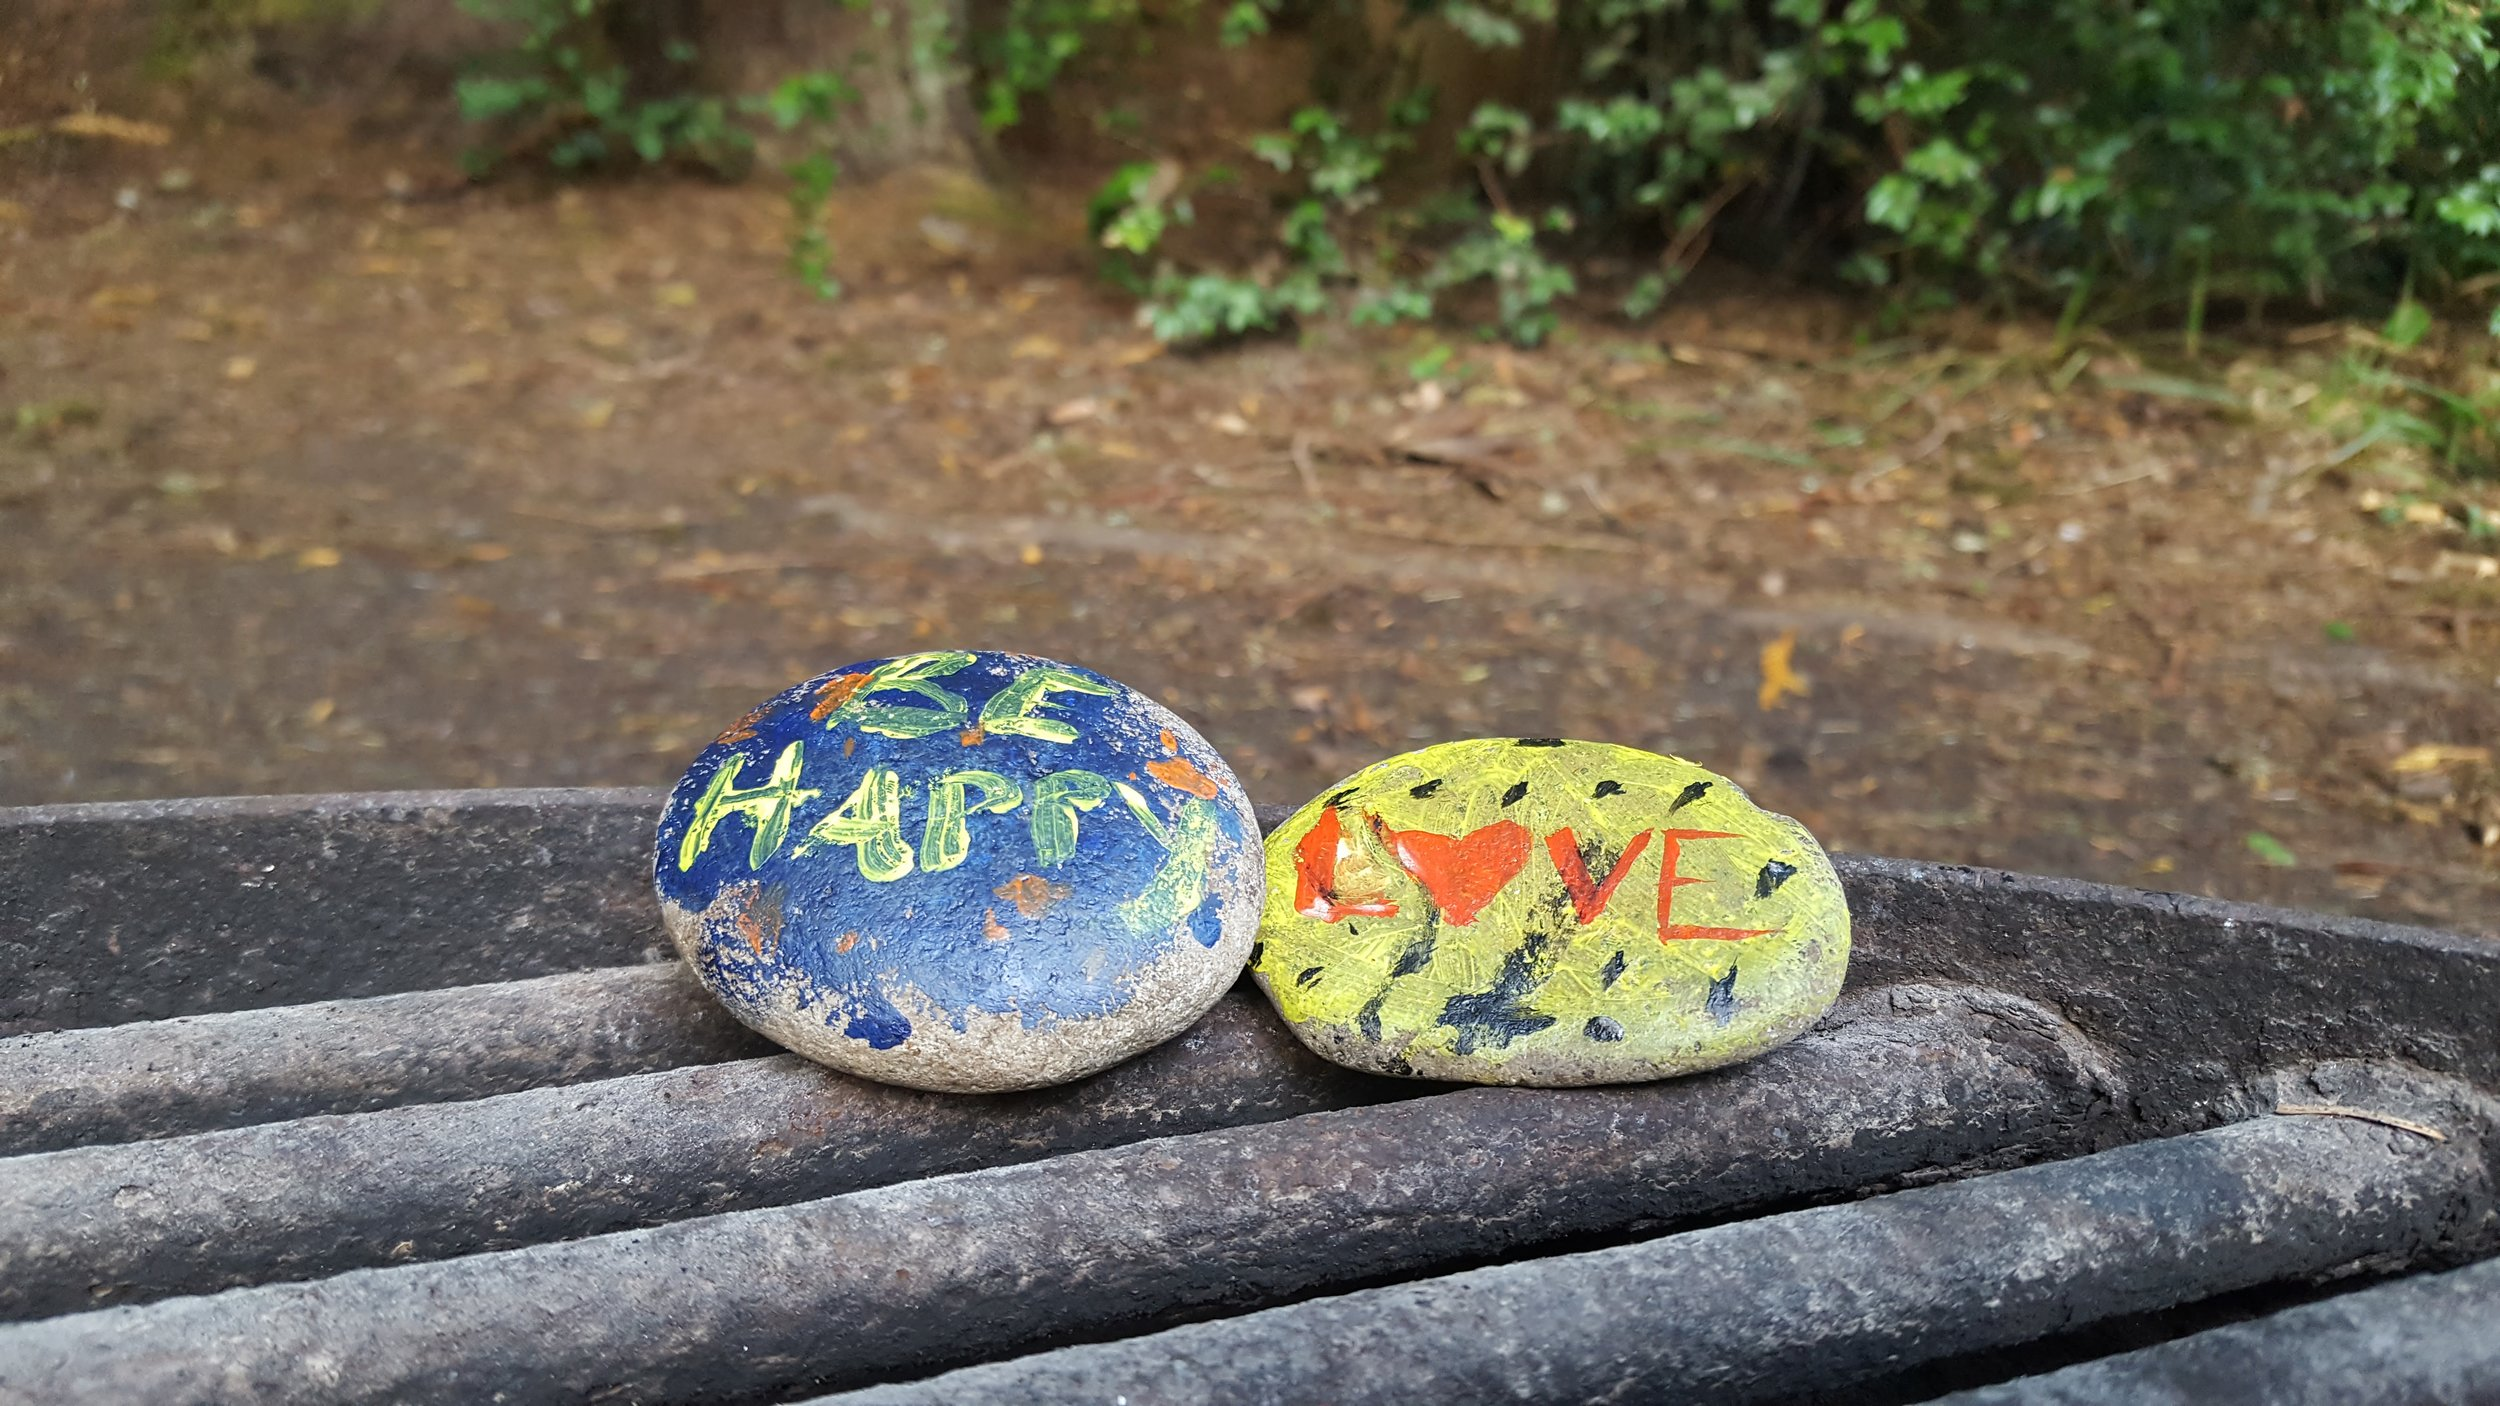 The boys painted 'love' rocks and we left them for the next campers to enjoy